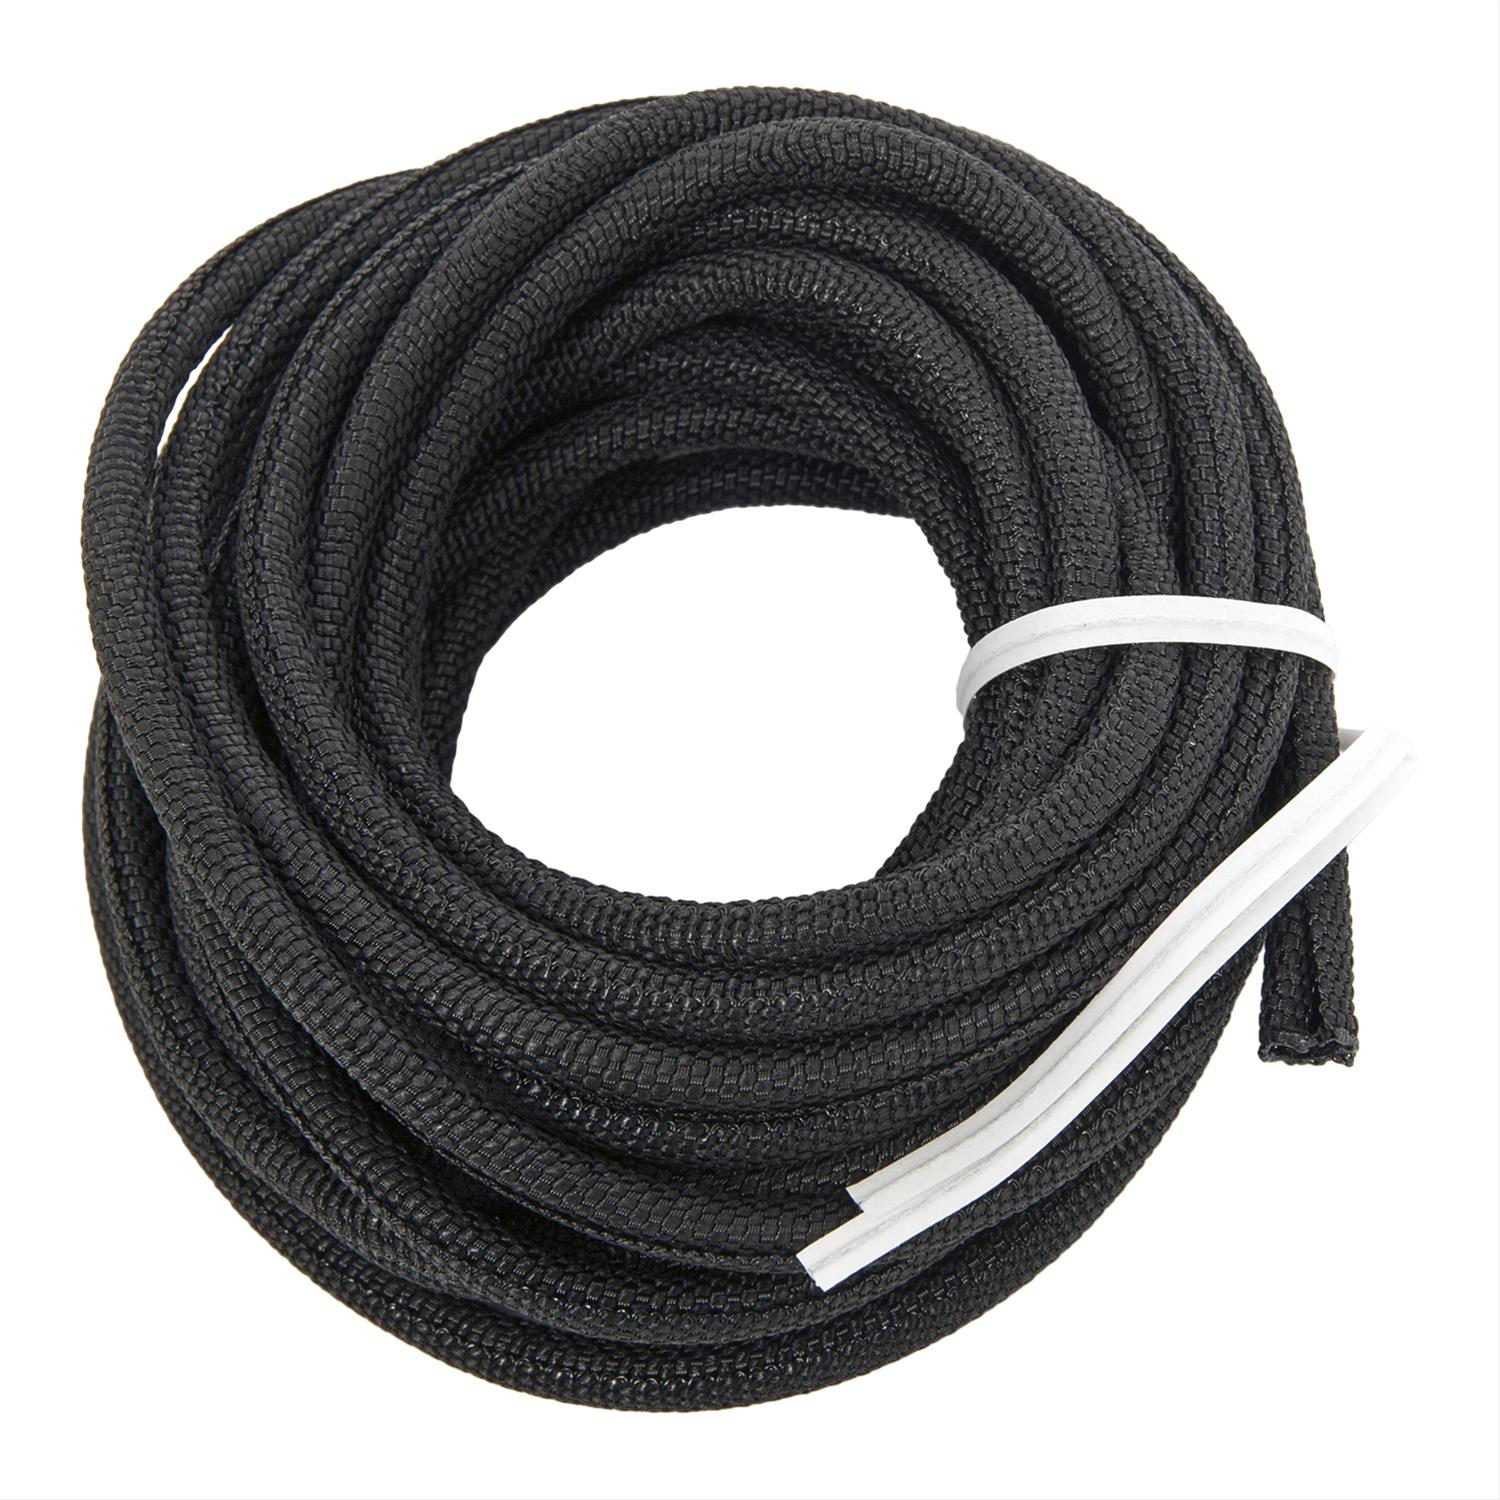 hight resolution of summit racing woven fabric wire wraps sum 890349 free shipping on orders over 99 at summit racing